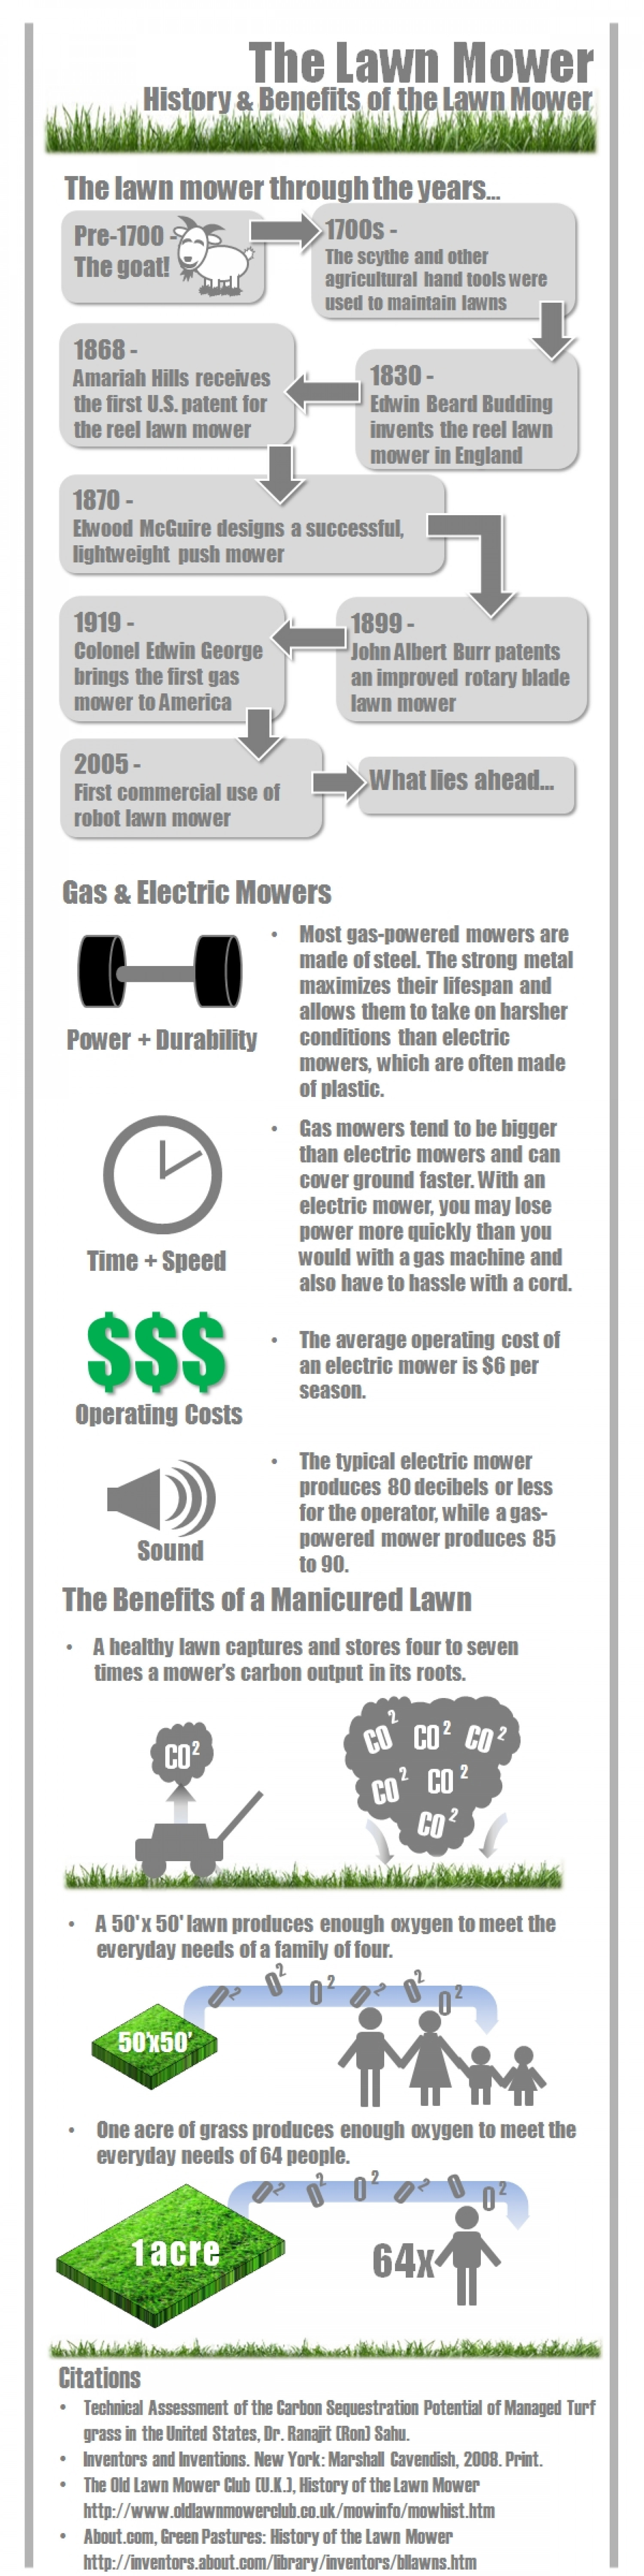 History & Benefits of the Lawn Mower Infographic